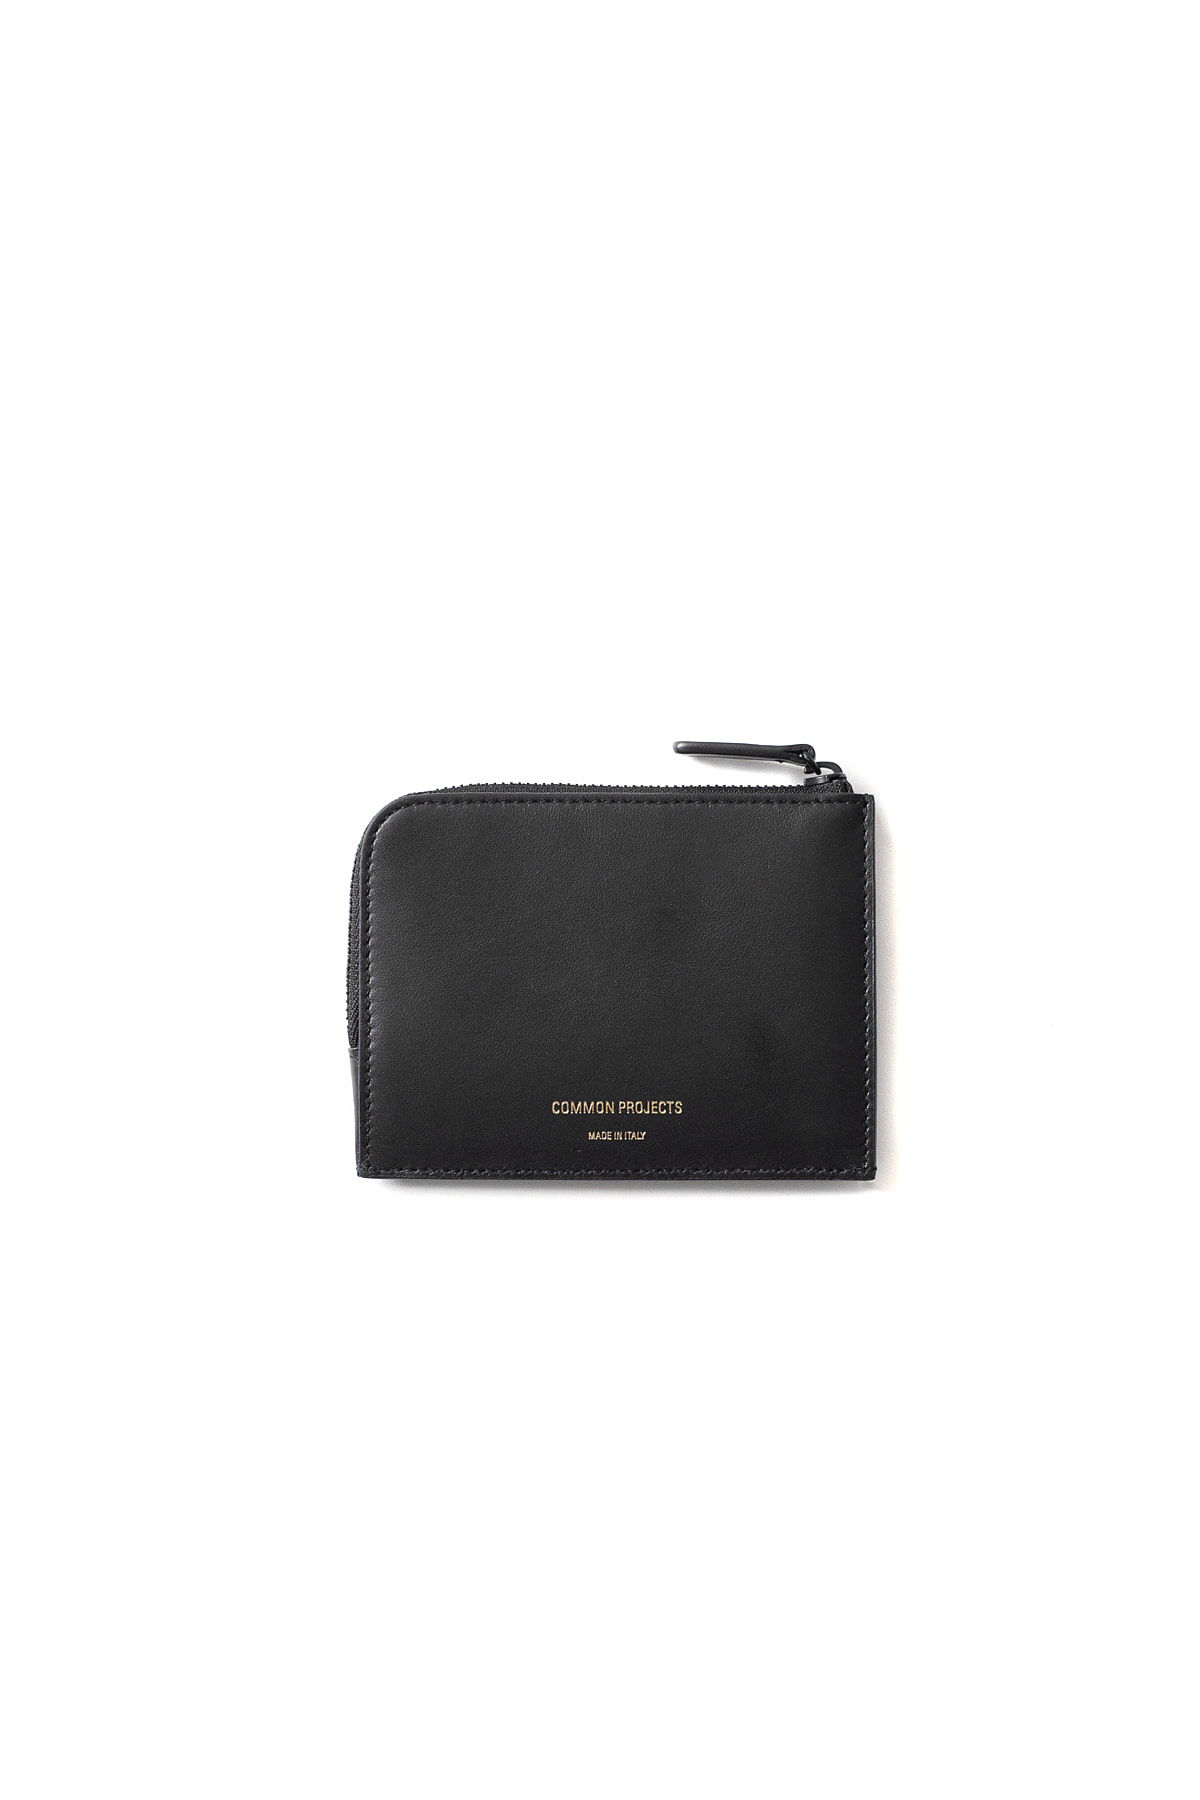 Common Projects : Zipper Wallet (Black)